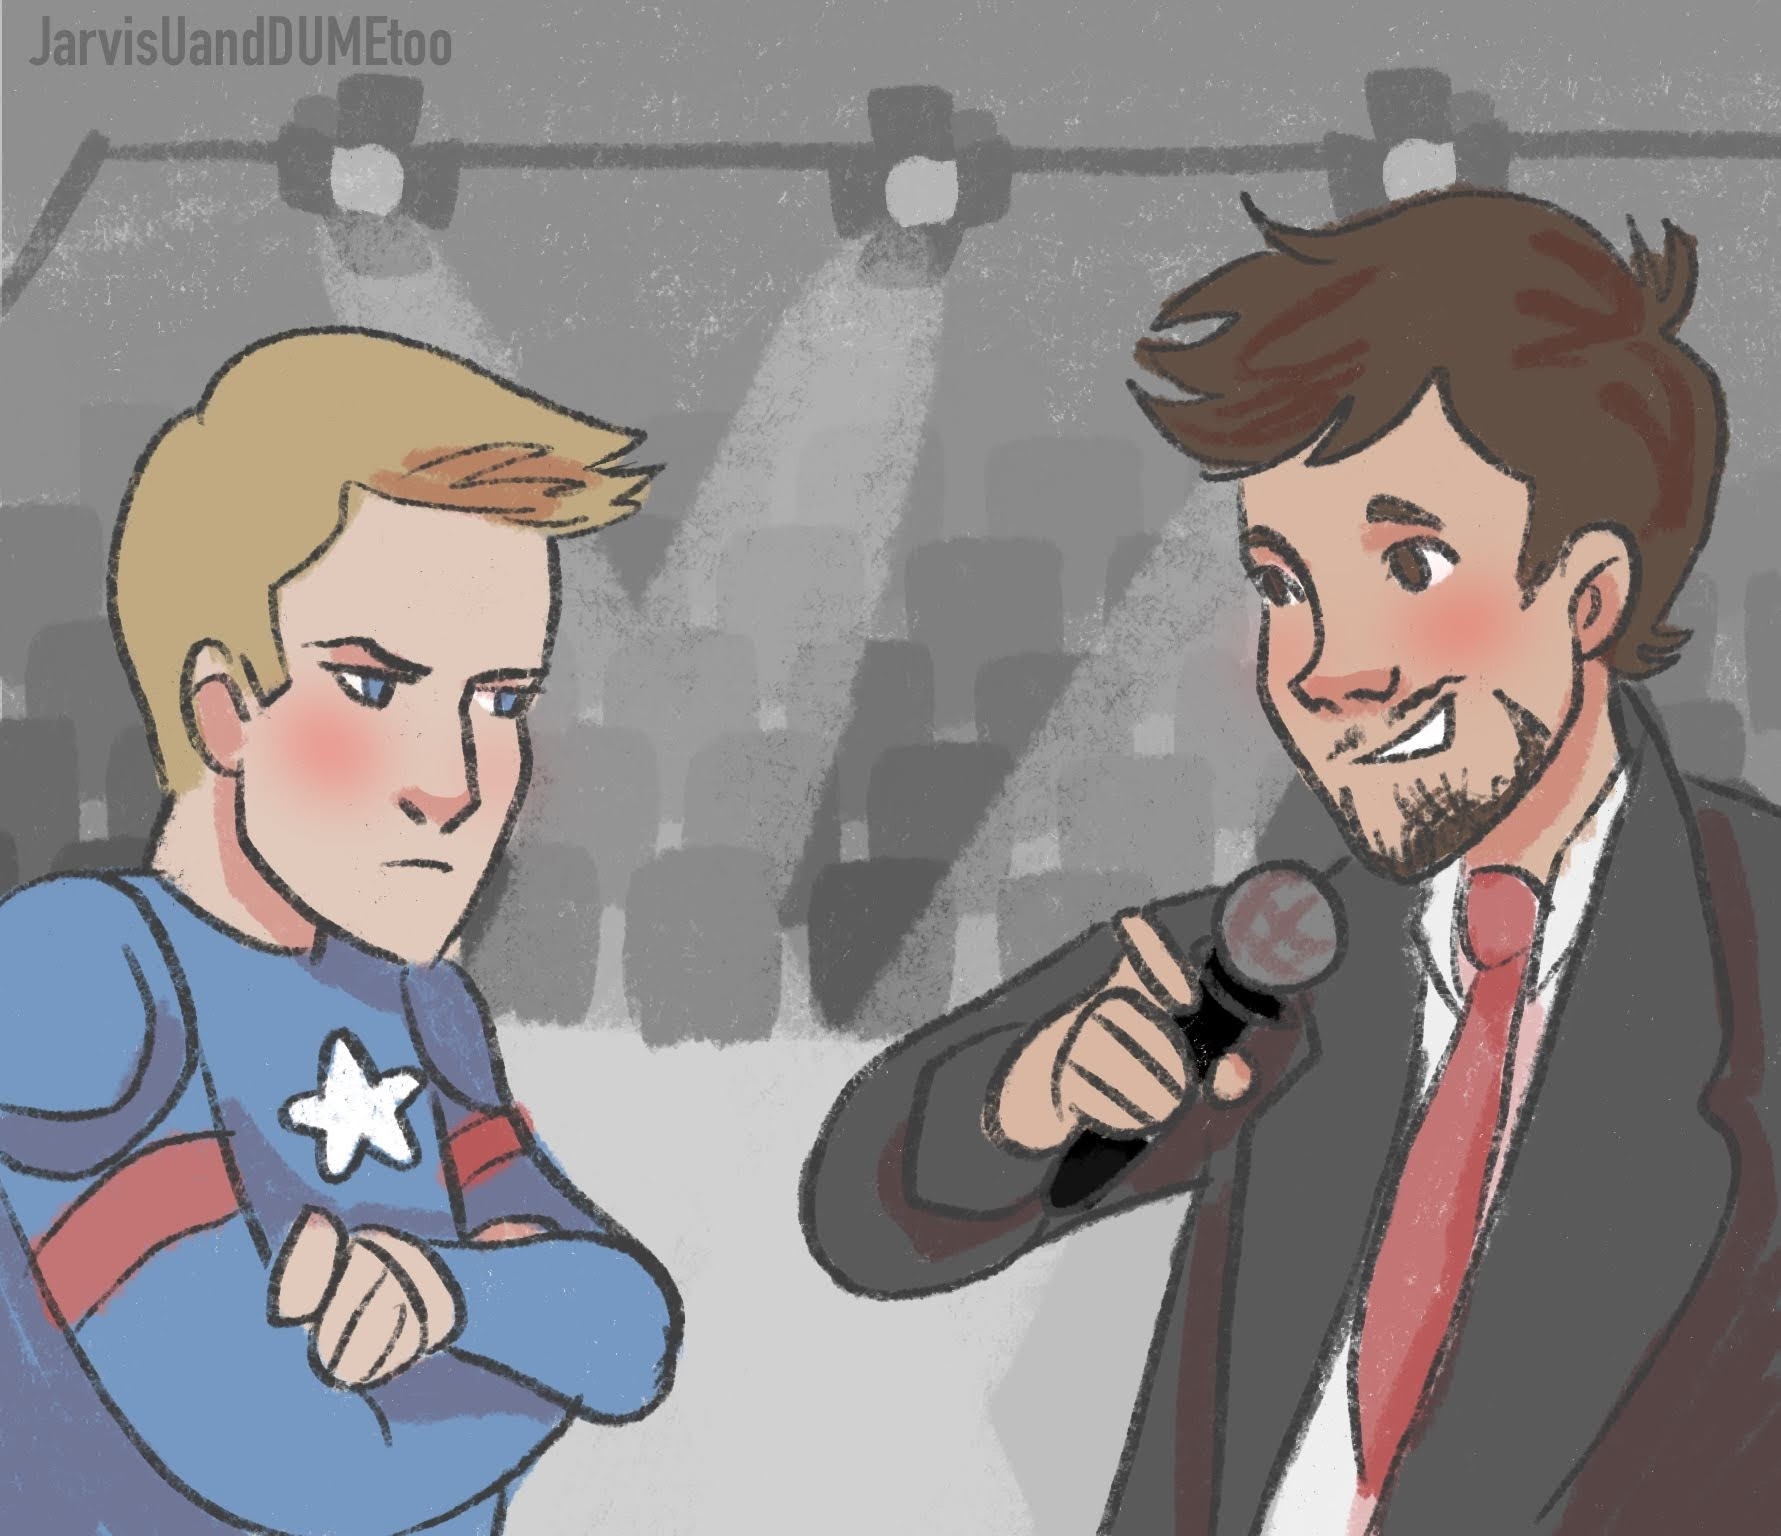 Tony is interviewing Steve. Steve is in a cheap looking version of the Captain America suit and looks angry. Behind them there is a empty auditorium.